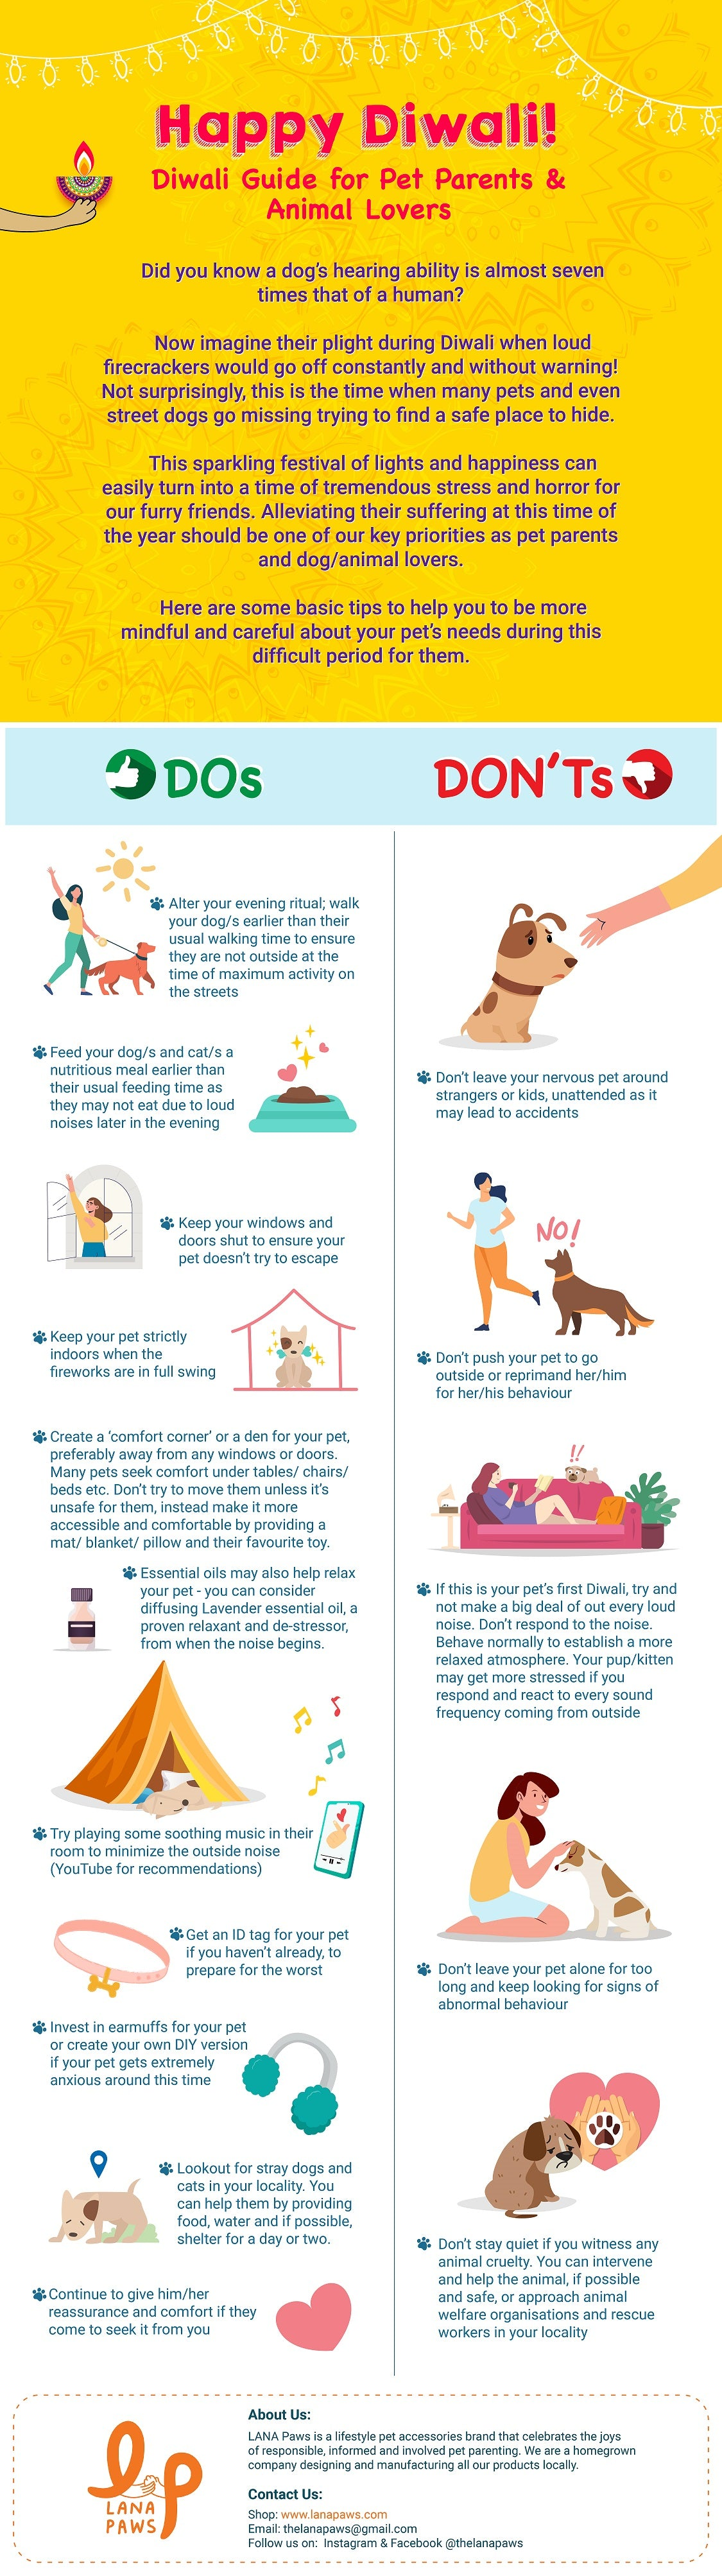 how to help animals and pets during Diwali